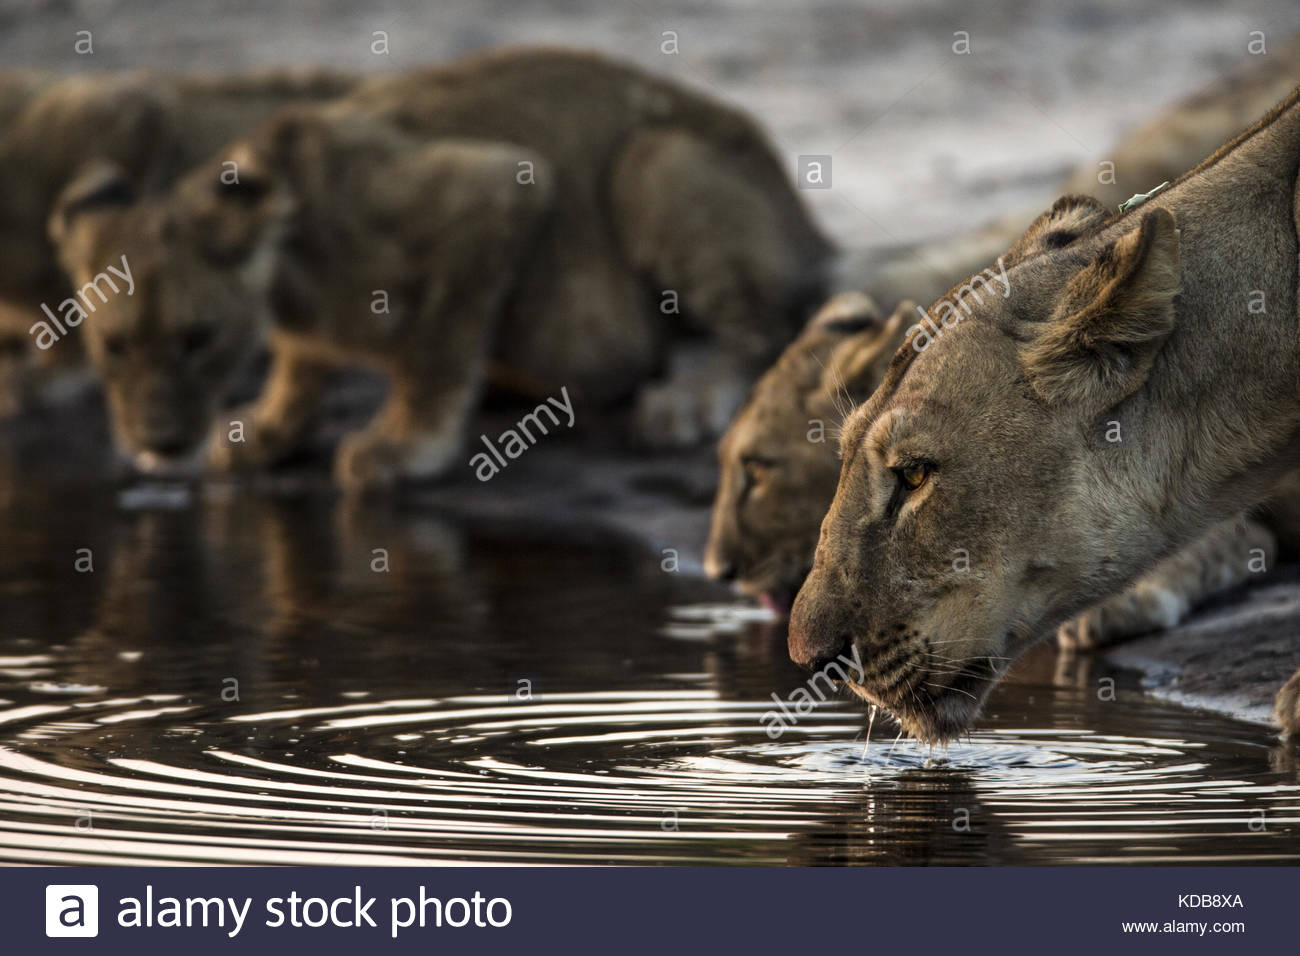 A Lioness, Panthera leo, and her cubs drink from a spillway. - Stock Image